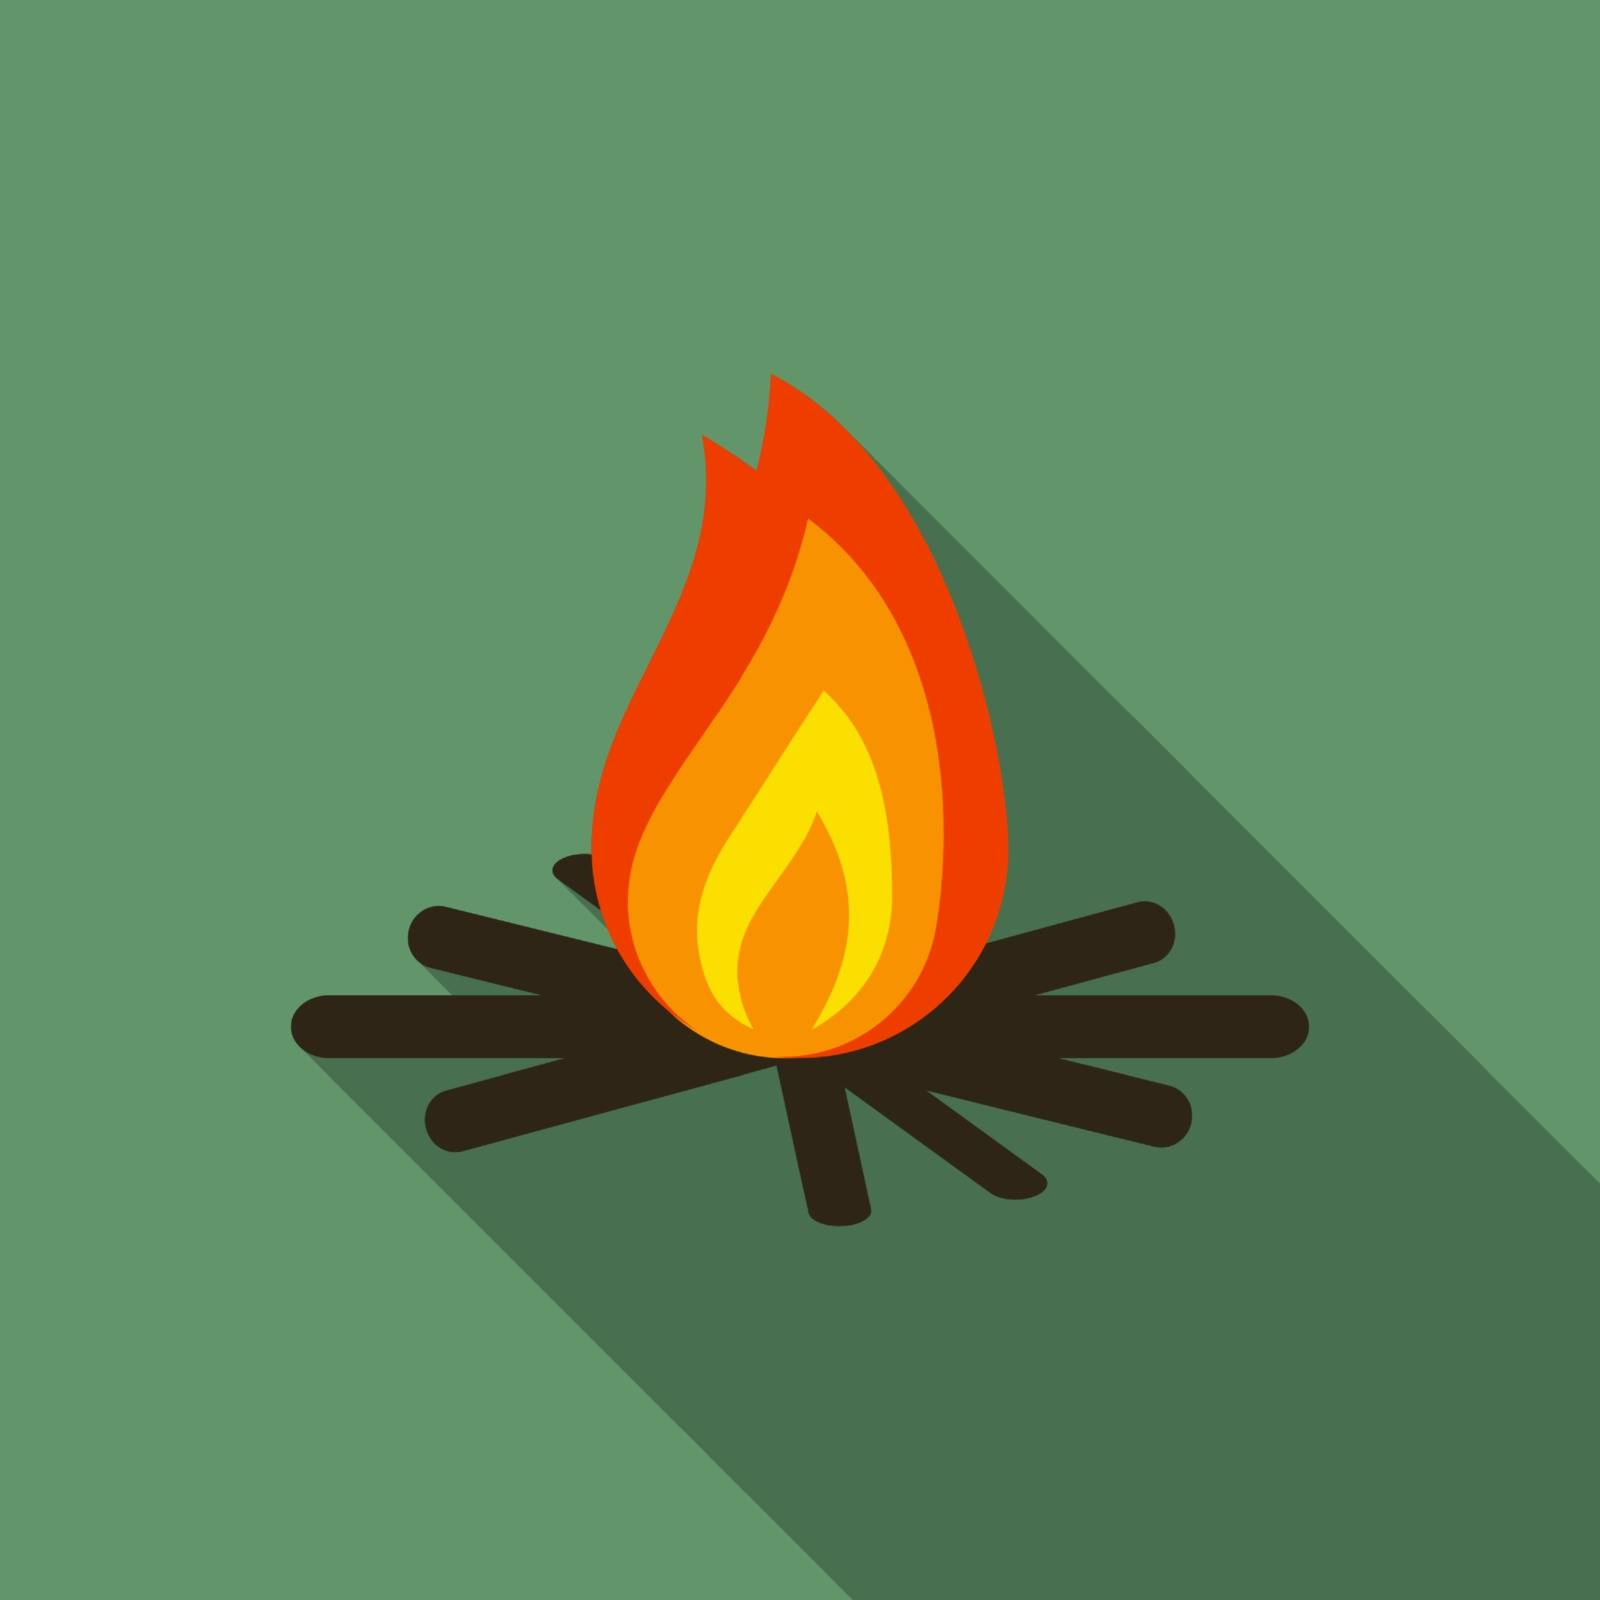 Flat design modern vector illustration of bonfire icon, camping and hiking symbol with long shadow.